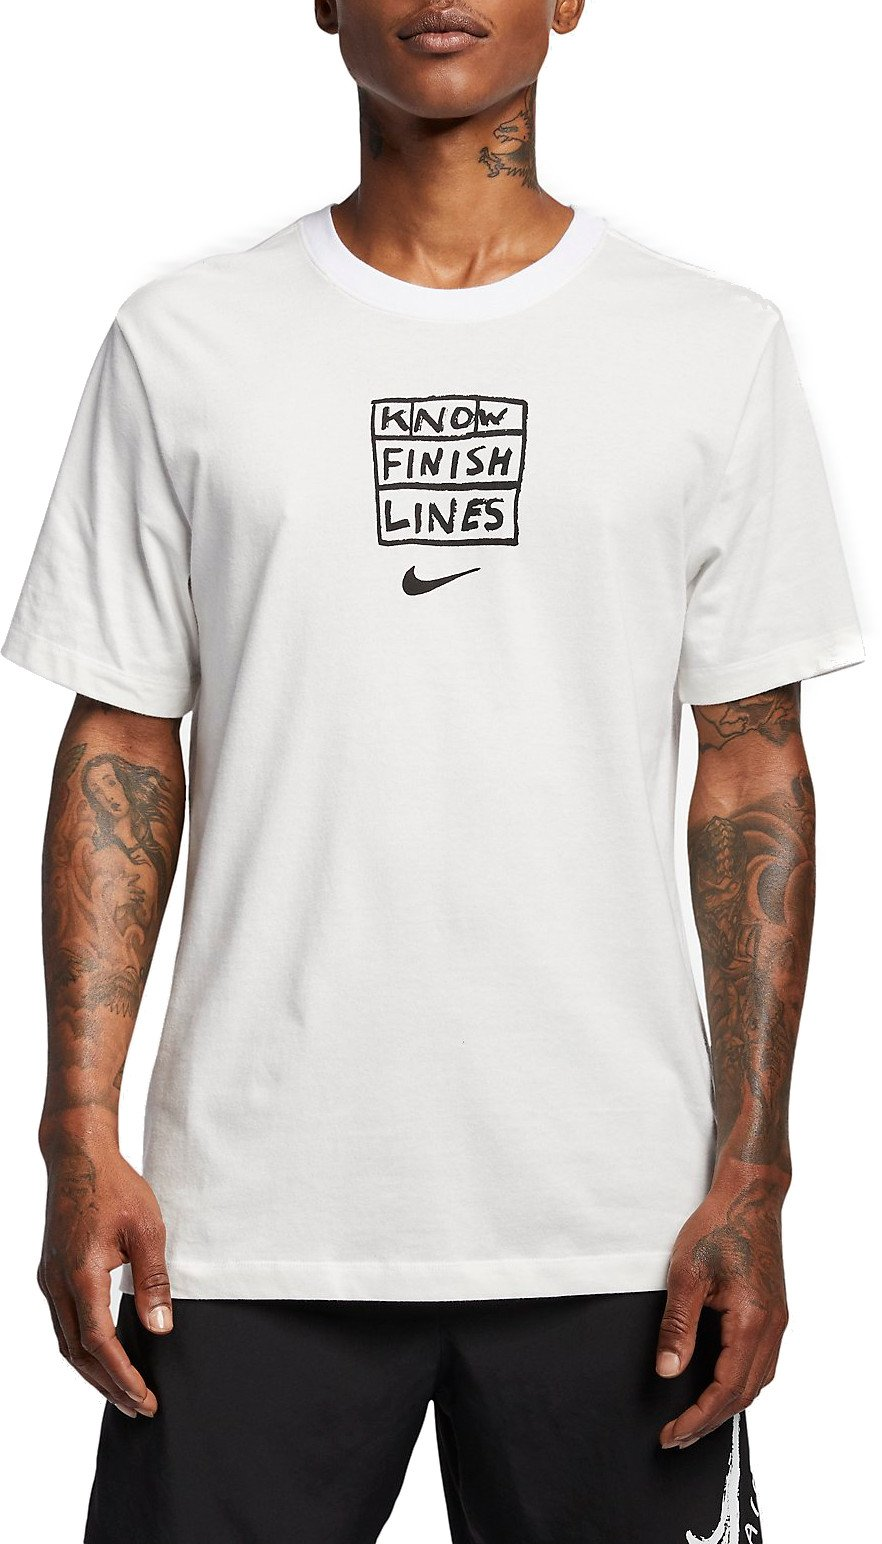 133 Best Images About Lips On Pinterest: T-Shirt Nike M NK DRY TEE DFC FINISH LINES